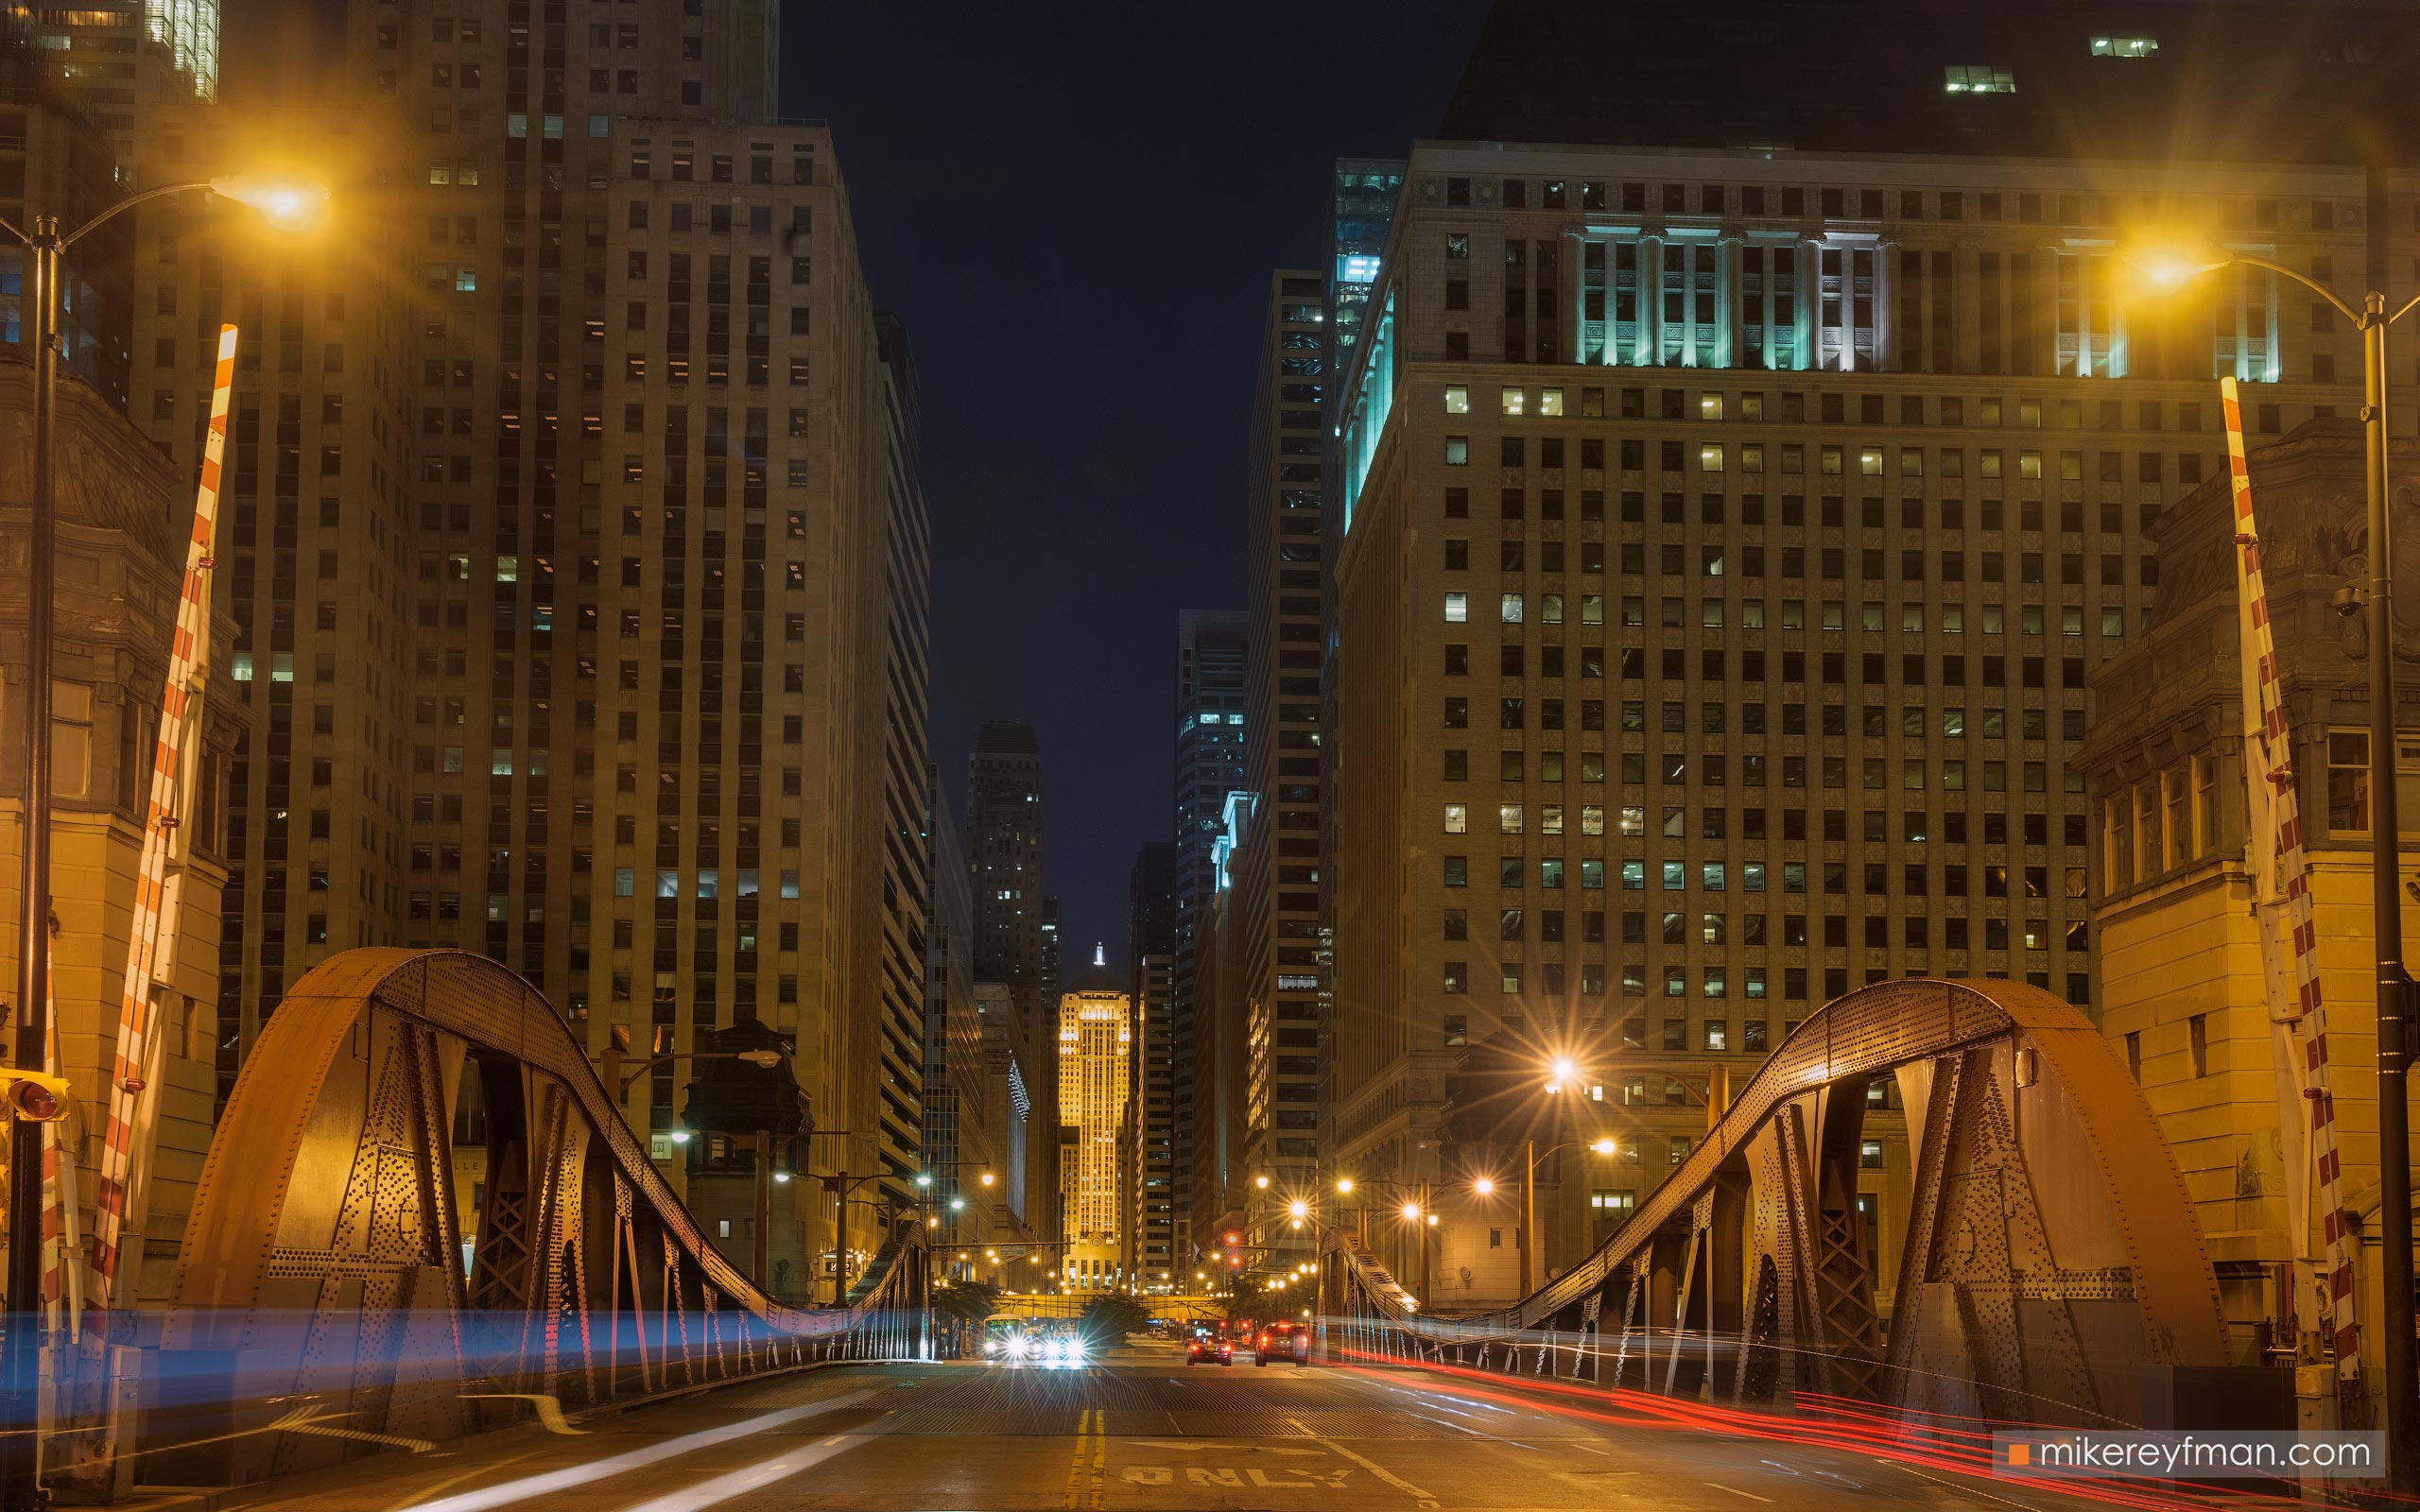 City at Night. Chicago, Illinois, USA. 057-CH1-M3X5775 - Chicago, USA: The